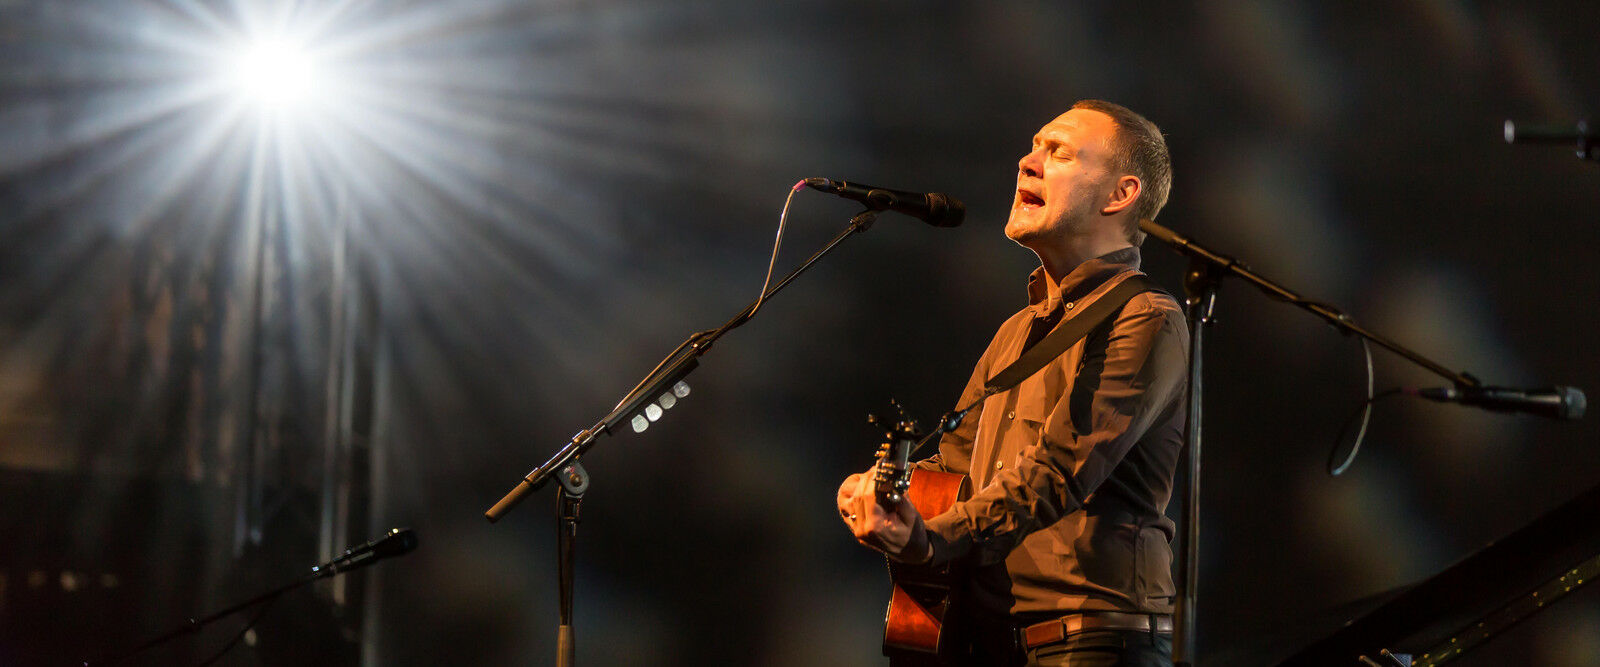 David Gray Solo Acoustic